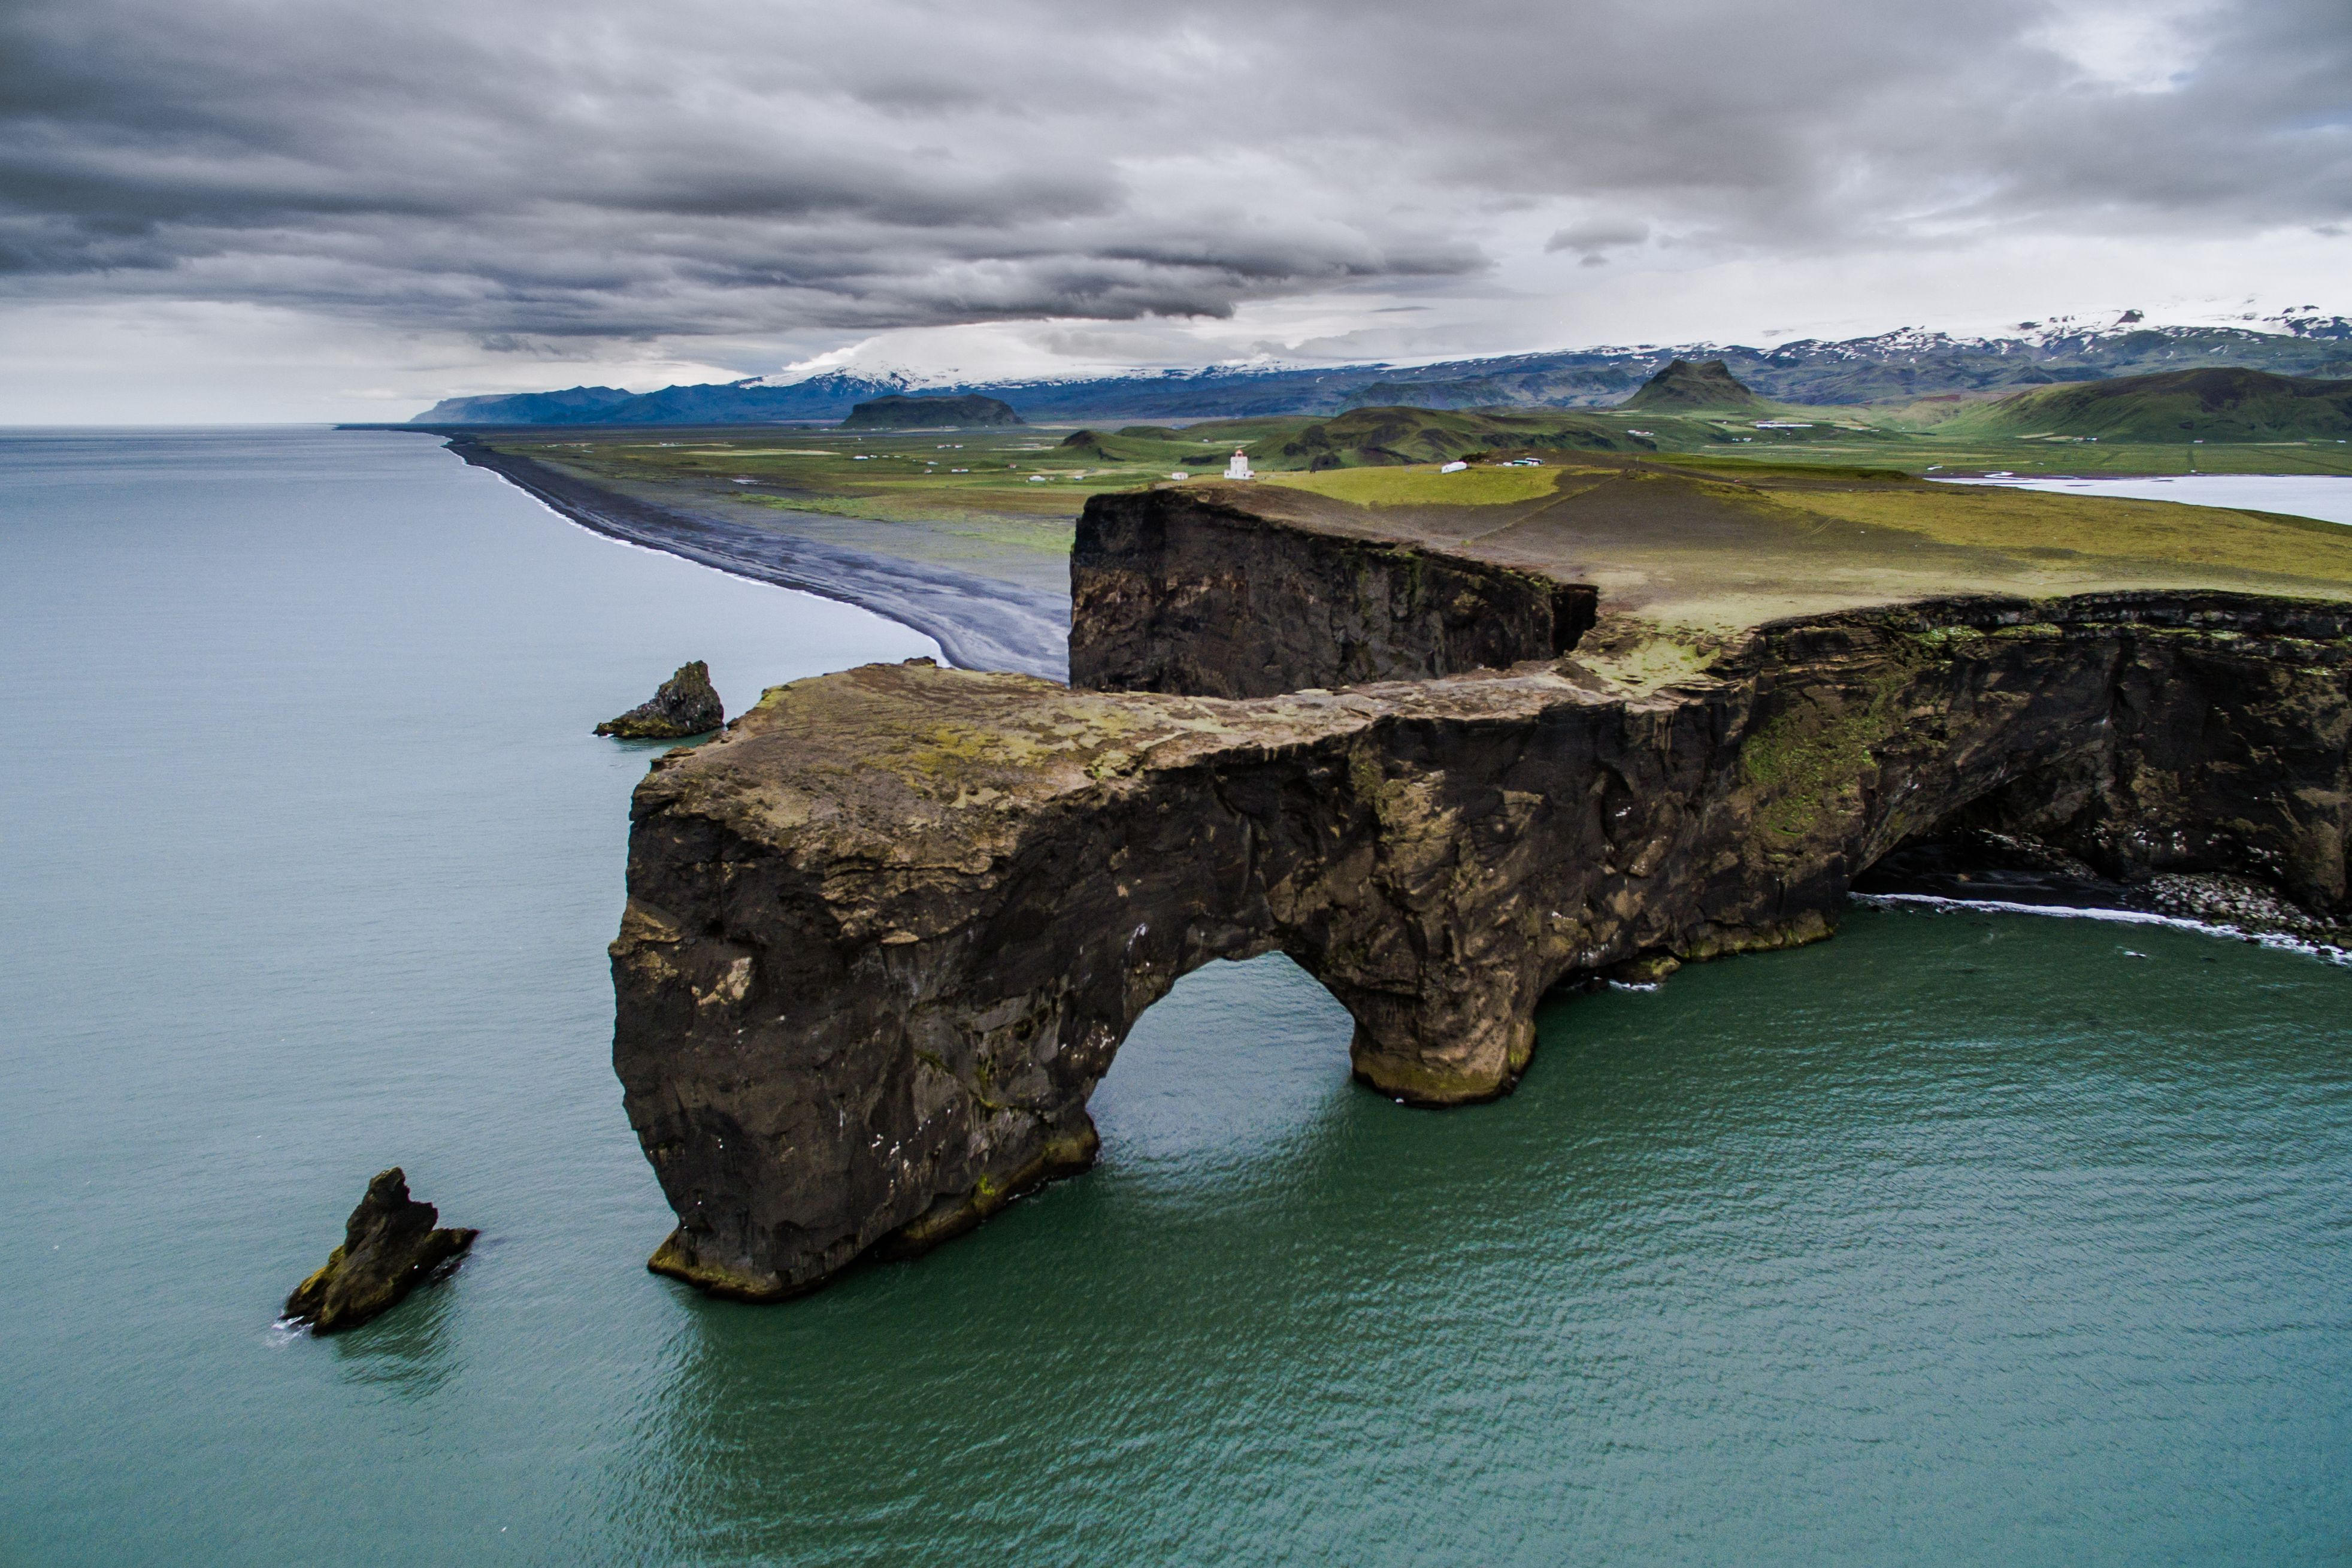 Slide 72 of 73: FULL BODY: http://www.rexfeatures.com/nanolink/qwqt Polish photographer Jakub Polomski used a drone to capture stunning aerial images of Iceland. The landscape photographer drove nearly 2,500 miles around the country using a drone to capture these aerial images.